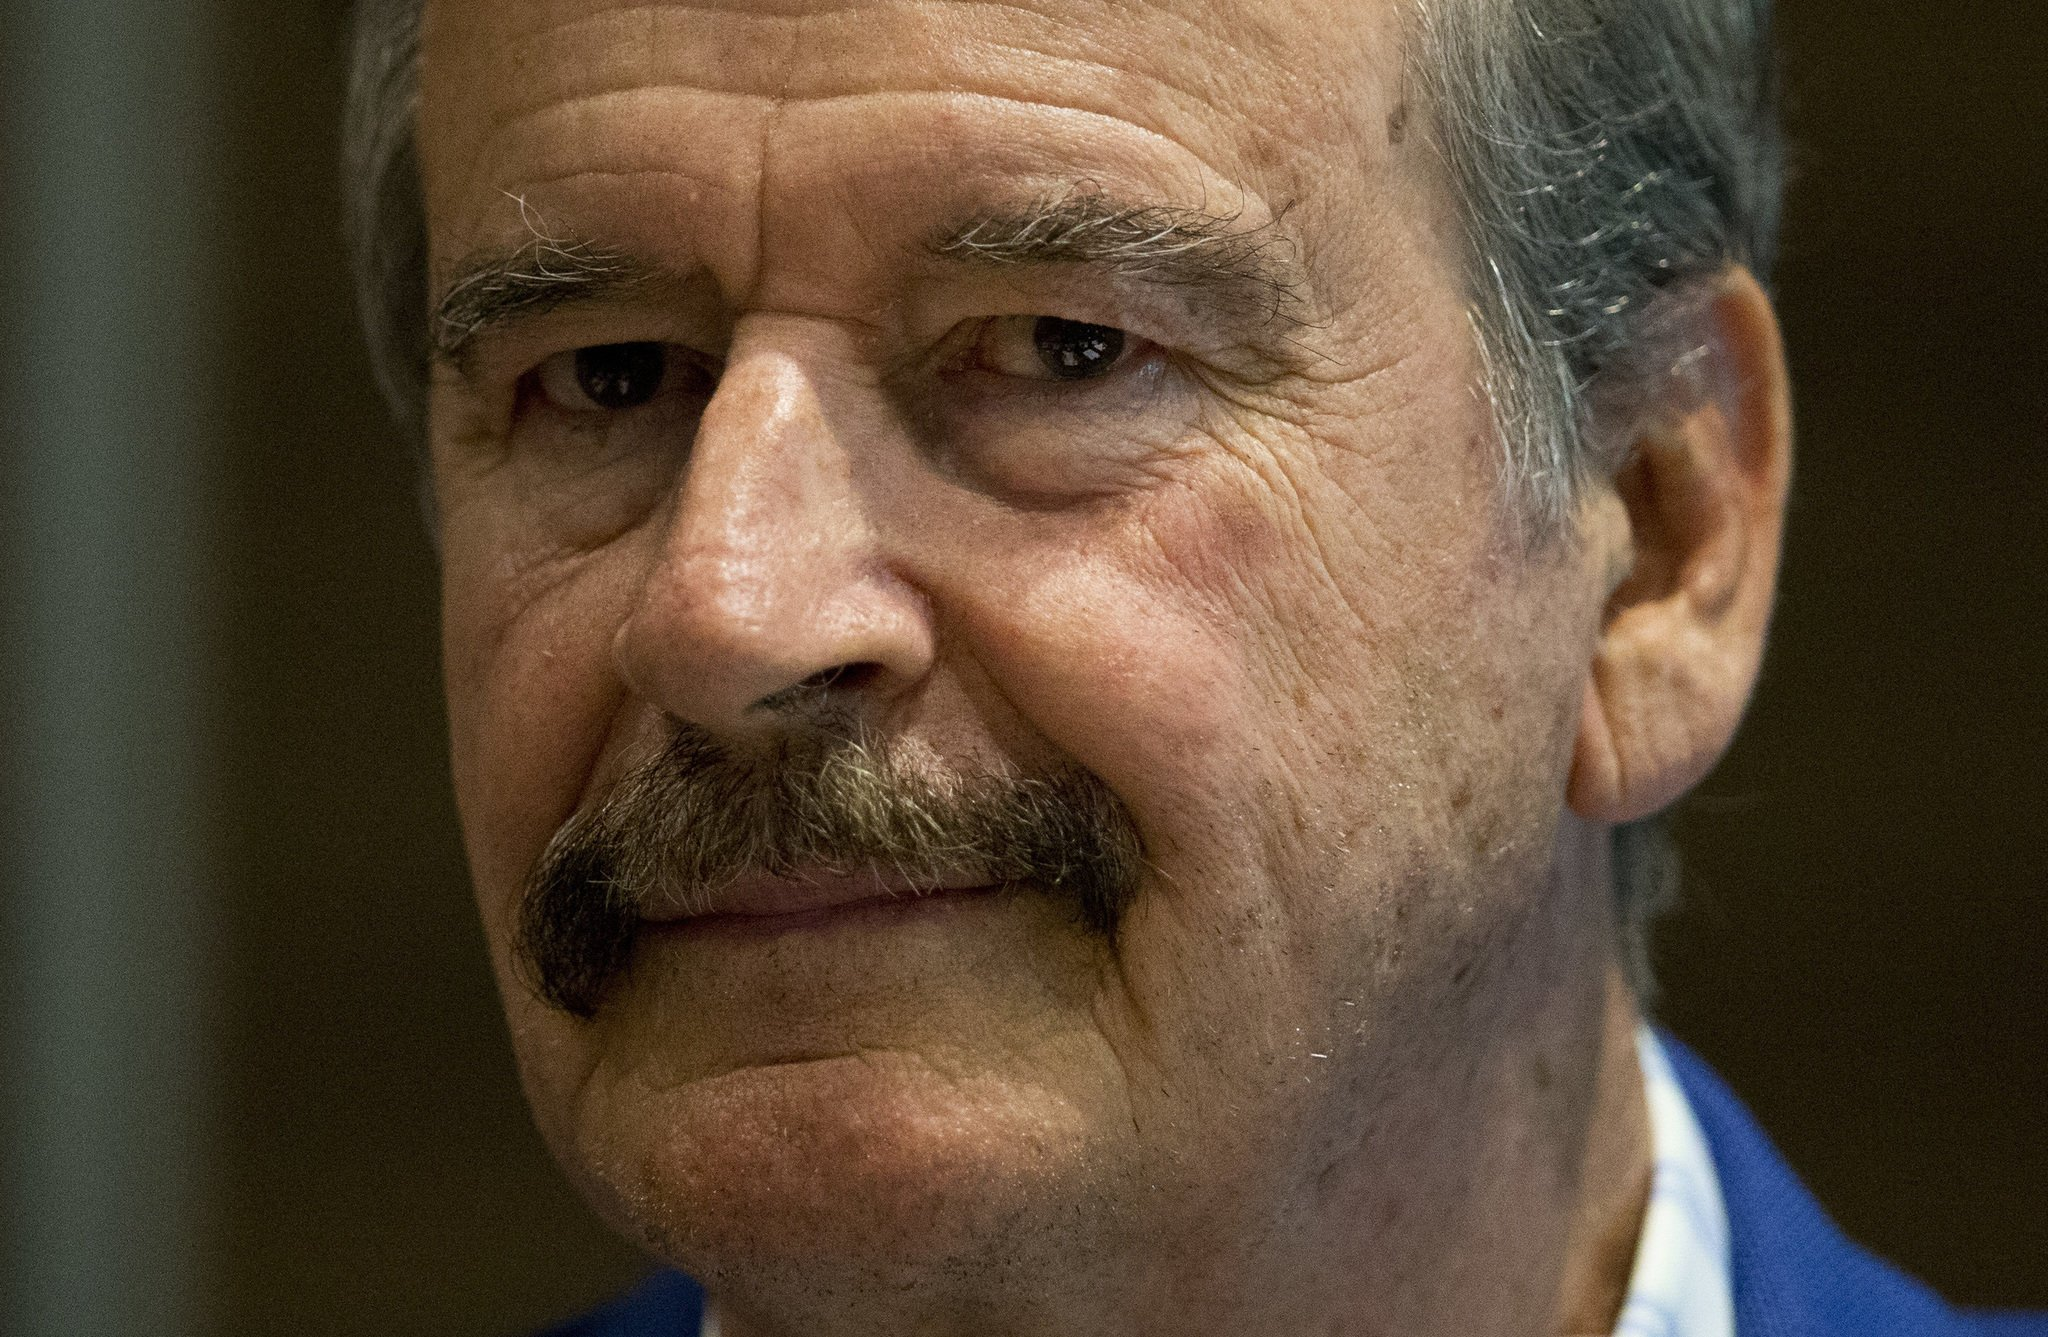 """Former Mexican President Vicente Fox offered his condolences to the victims of the Florida high school shooting before adding that the tragedy is """"what you get"""" with """"aggressive and violent language"""" from the Trump White House. """"When you speak out of the White House [with] this aggressive, violent language, when you discriminate, when you're a …"""